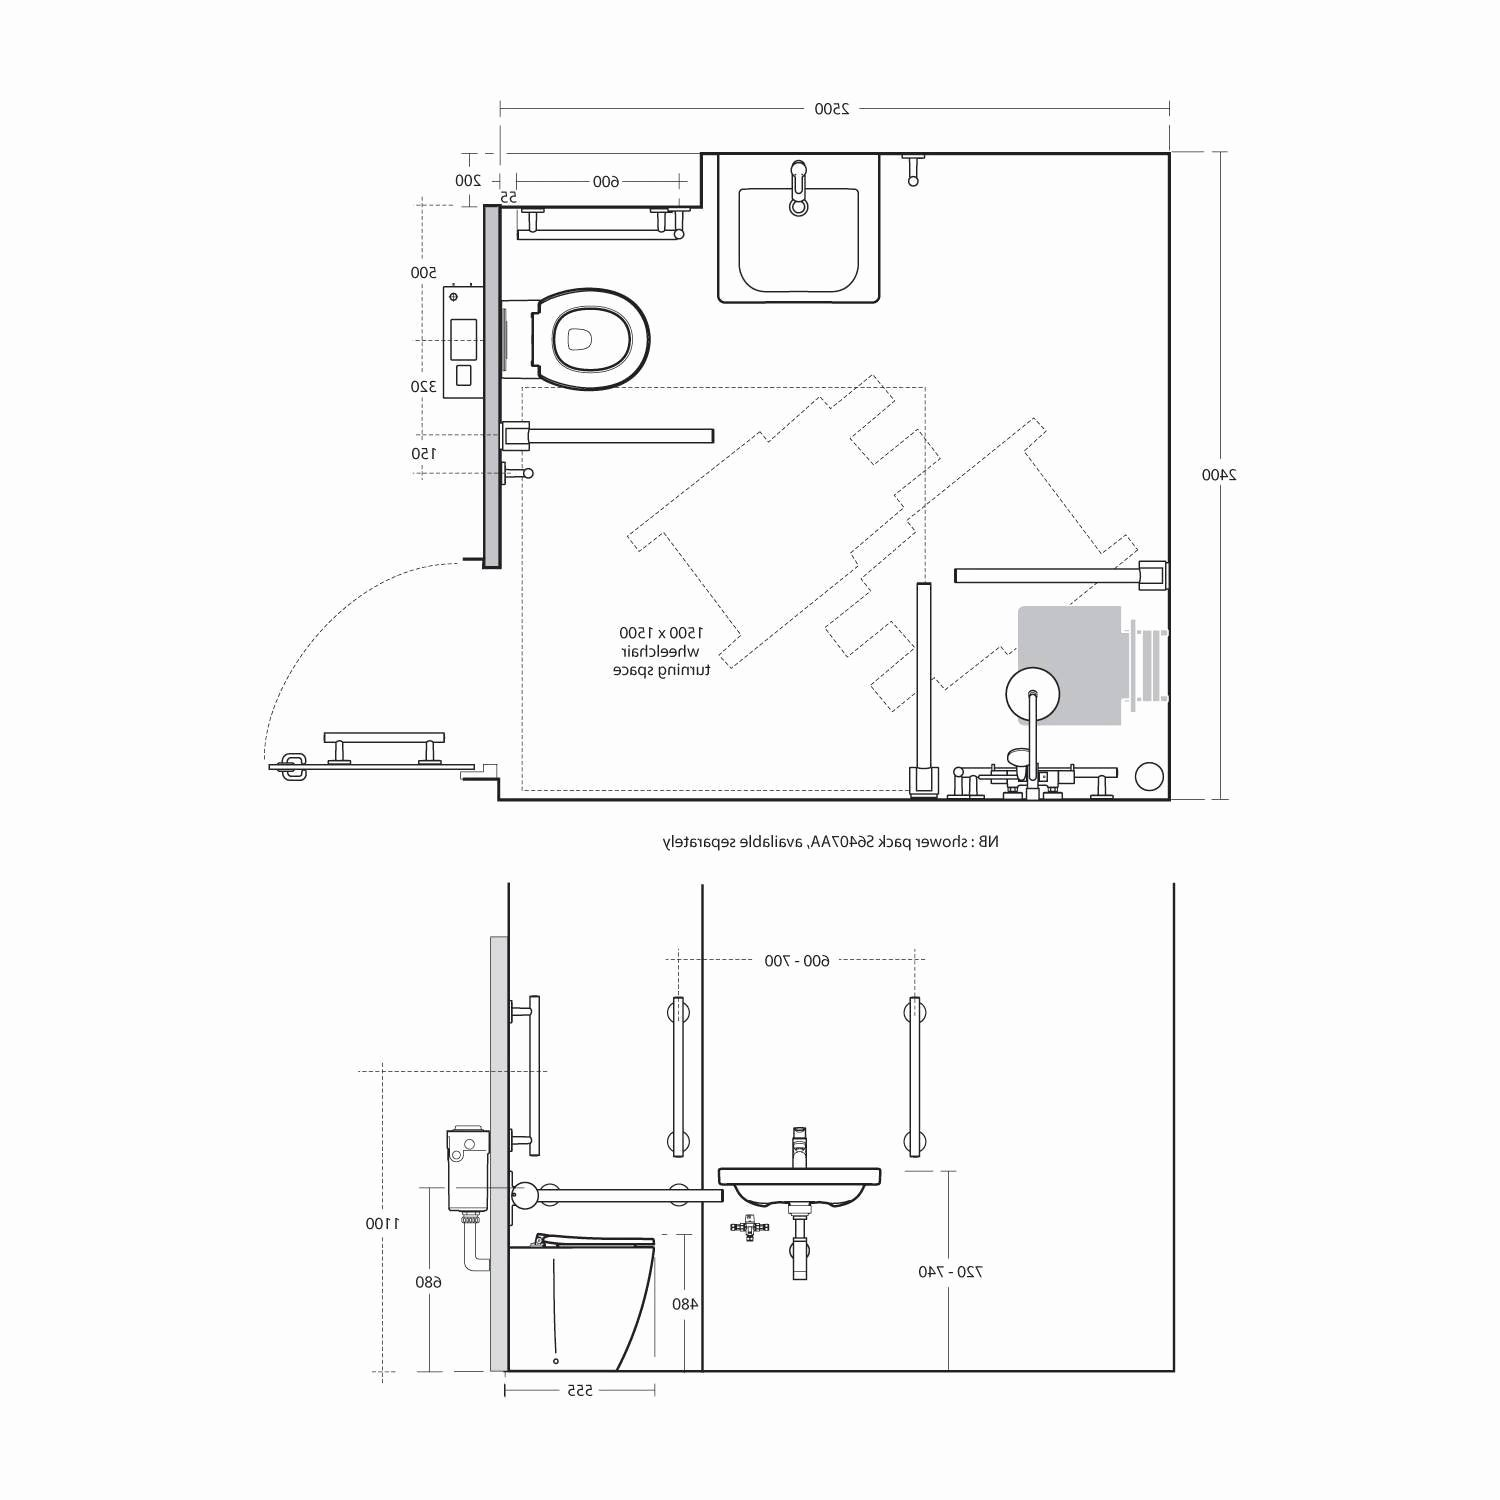 Excel Floor Plan Template Fresh Warehouse Layout Template Excel Luxury 18 Best Warehouse